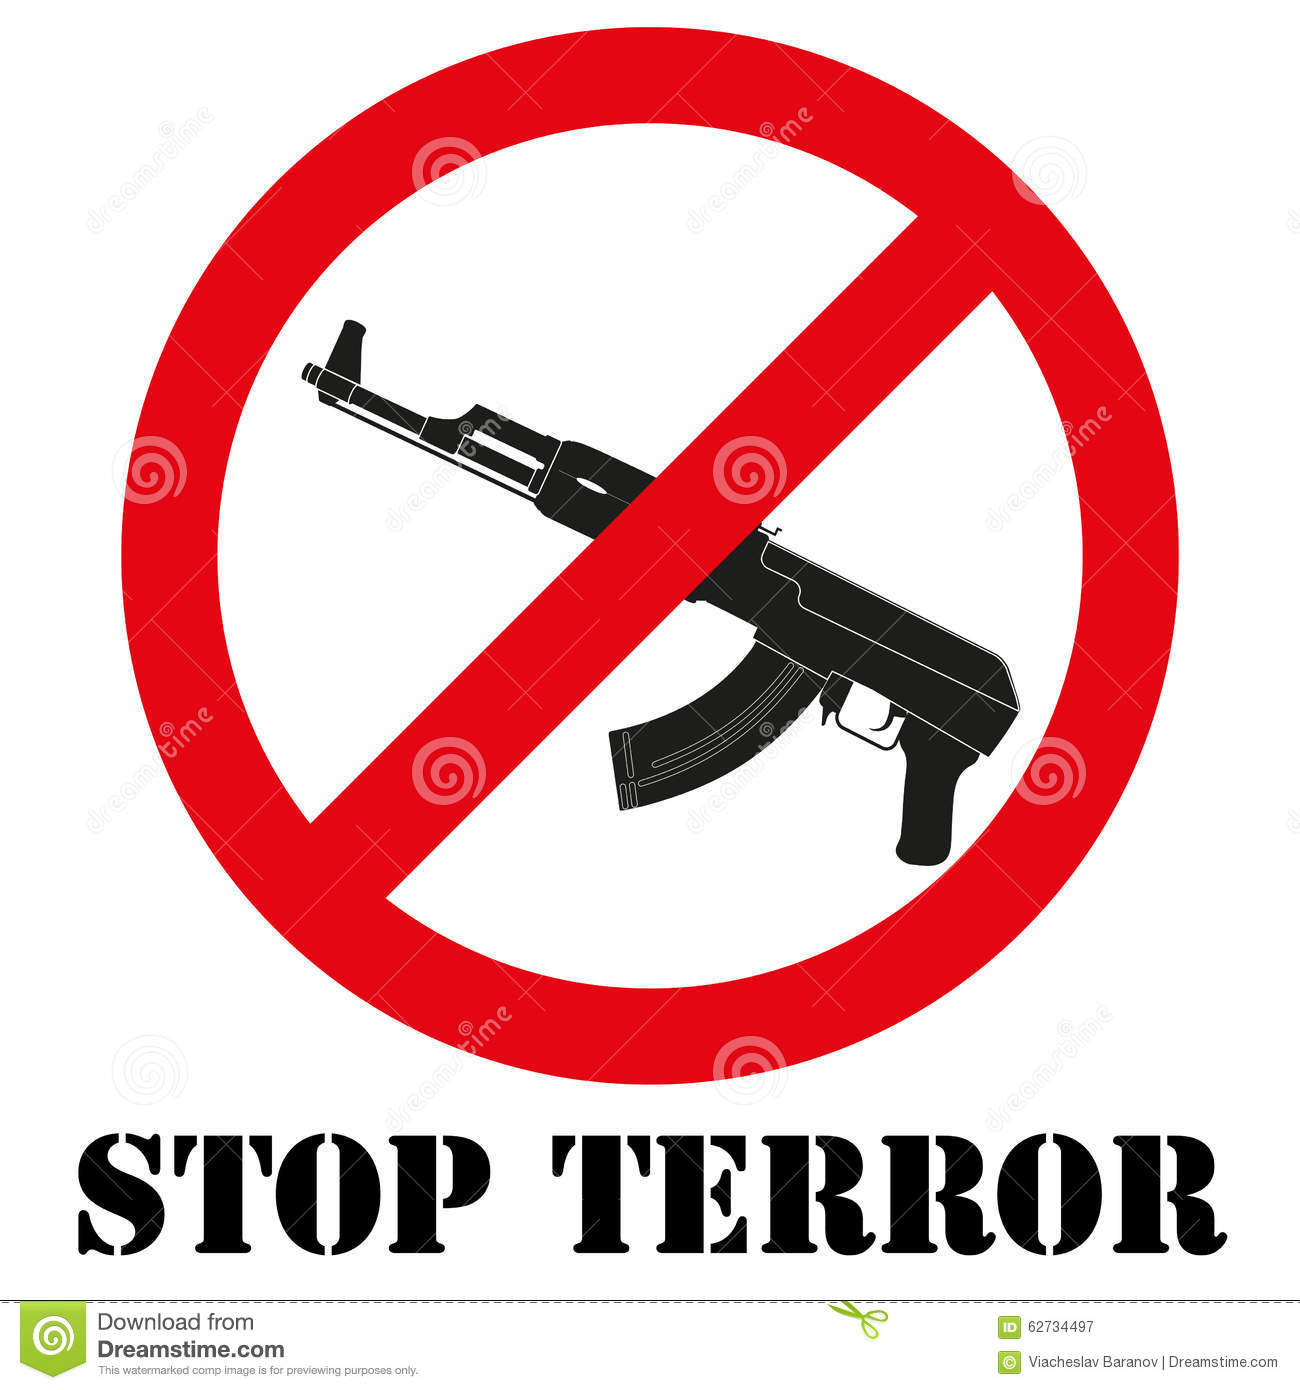 how to stop terrorism wikipedia